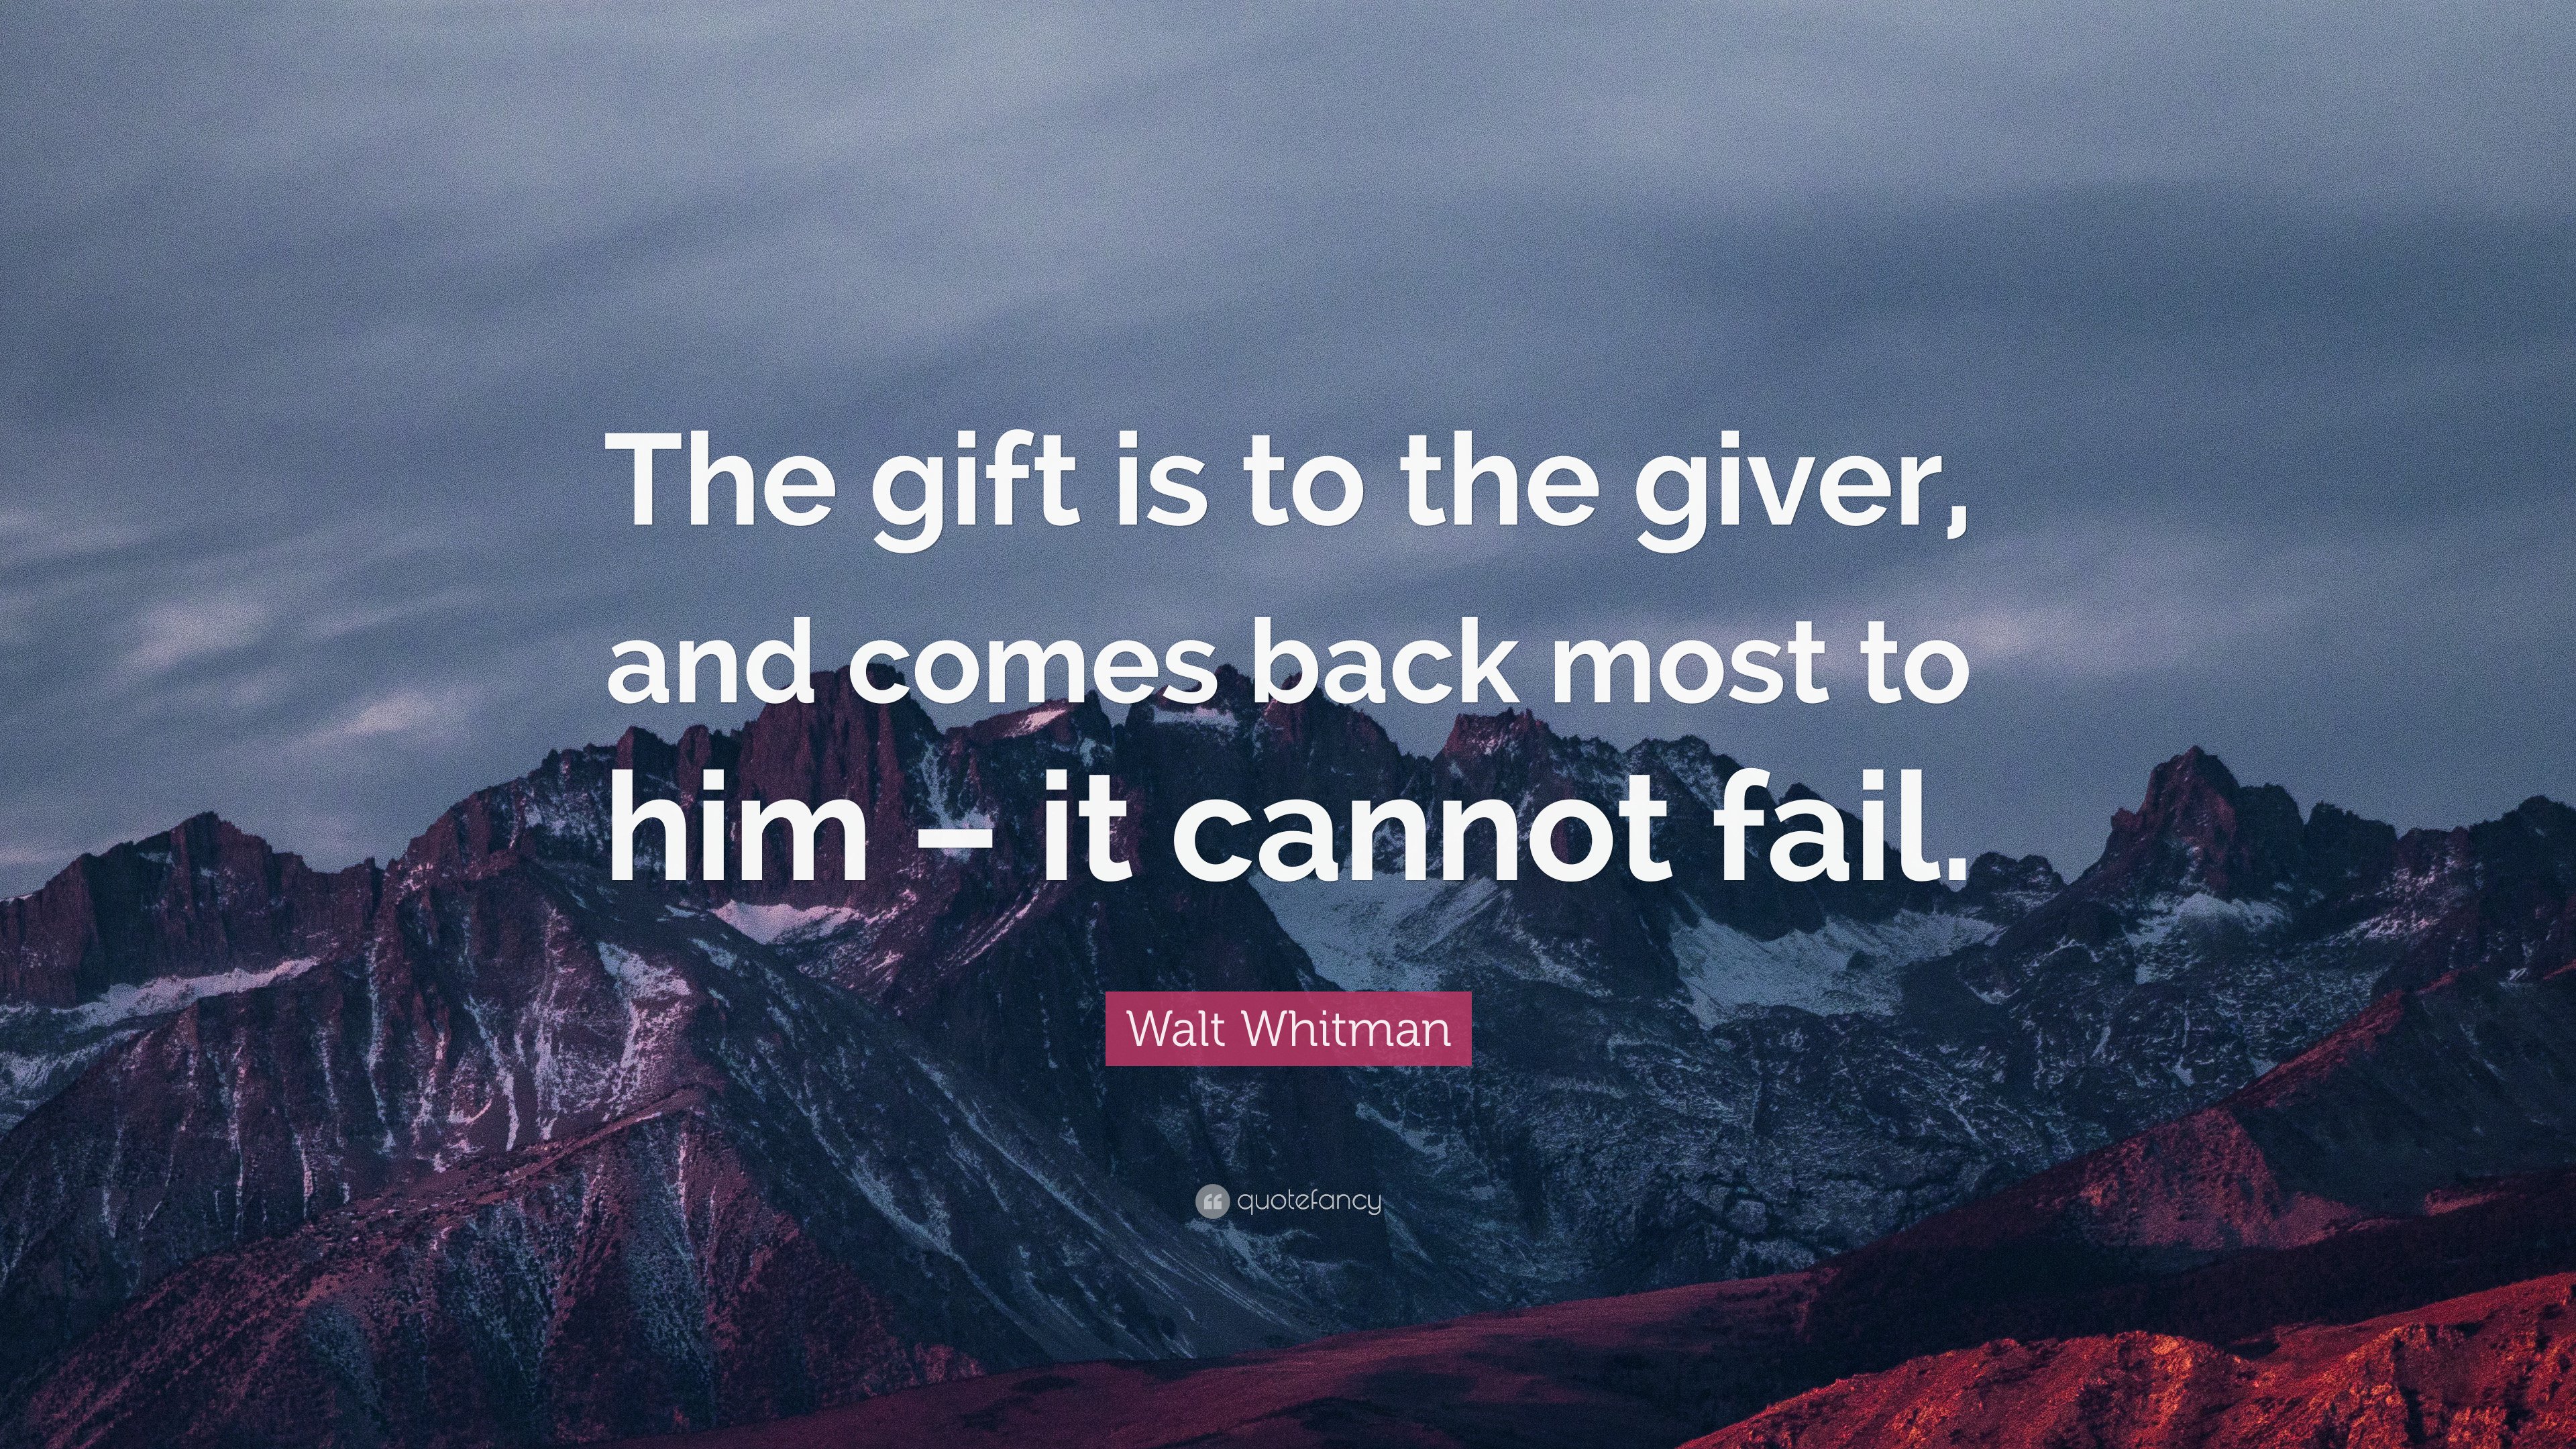 Fail Quotes Wallpaper Walt Whitman Quote The Gift Is To The Giver And Comes